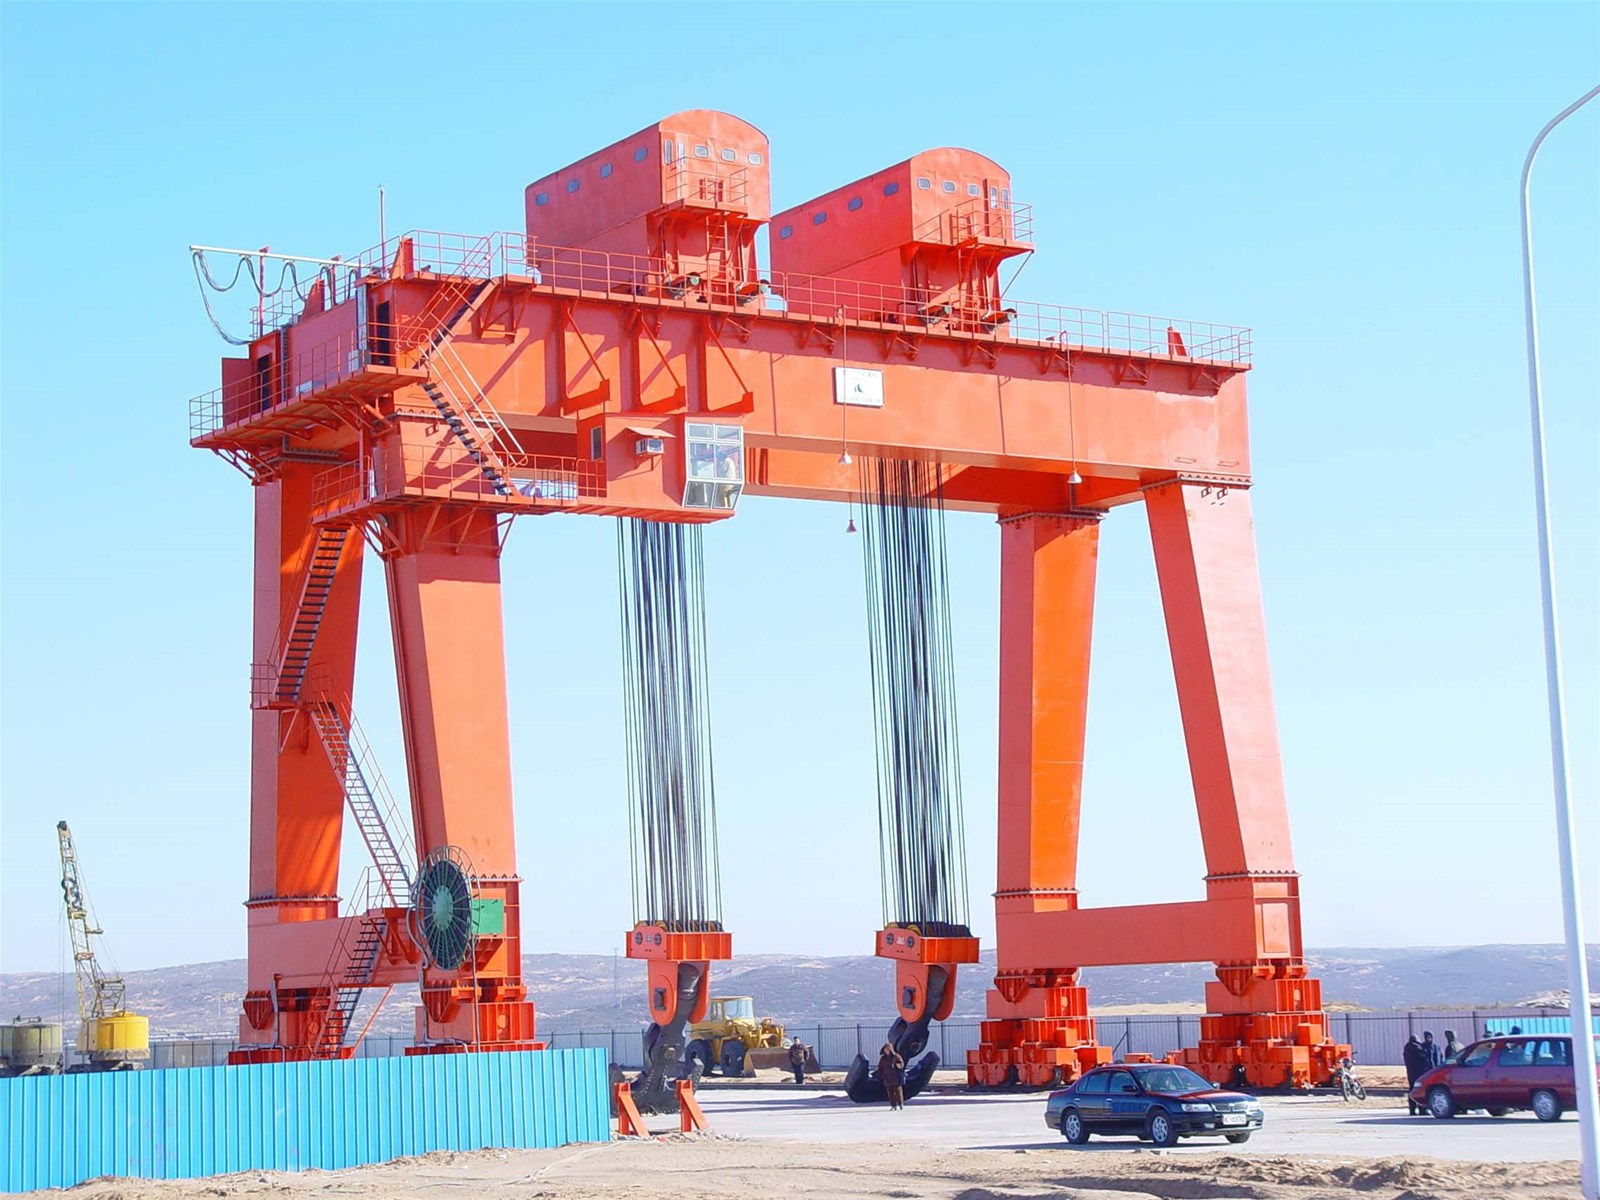 Gantry crane also called gantry crane